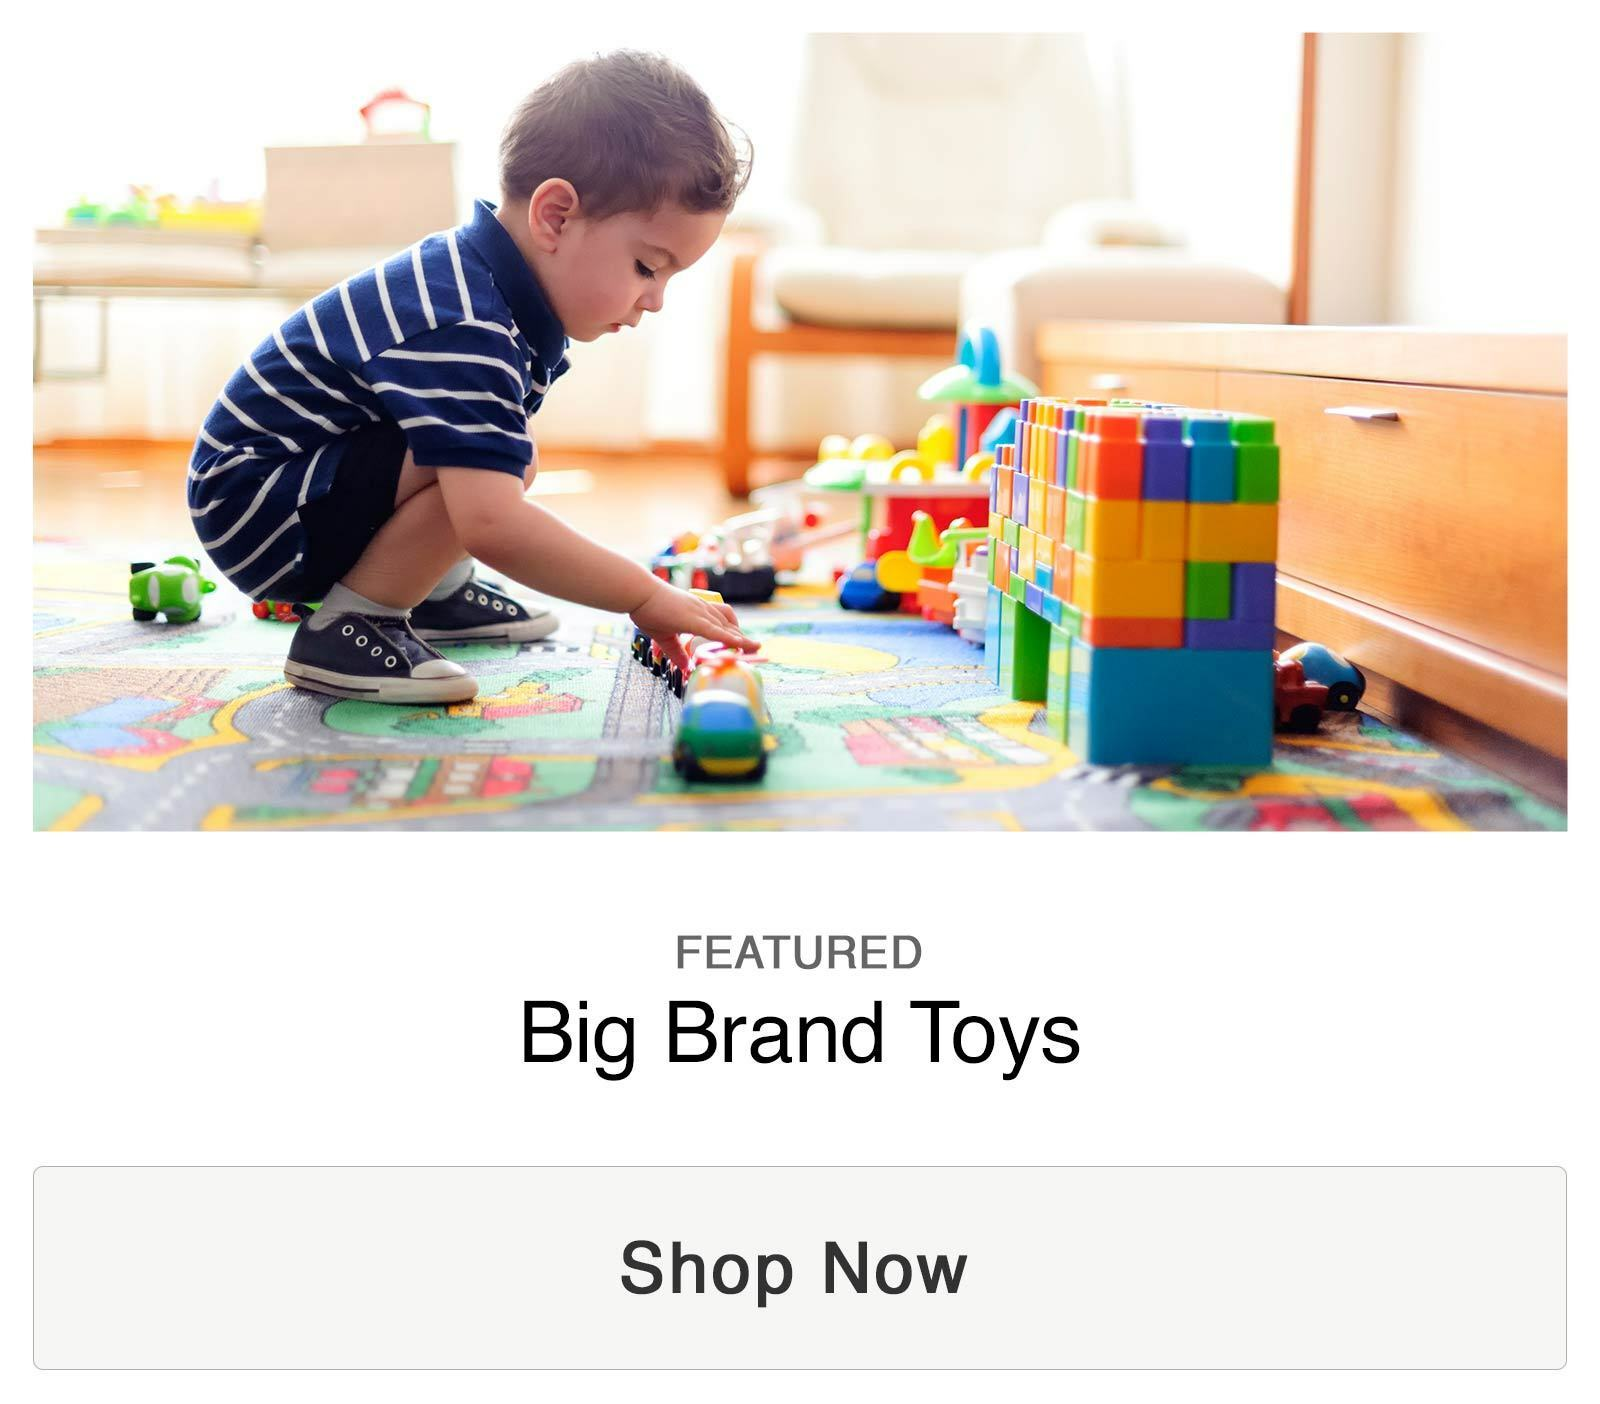 Big Brand Toy Shop